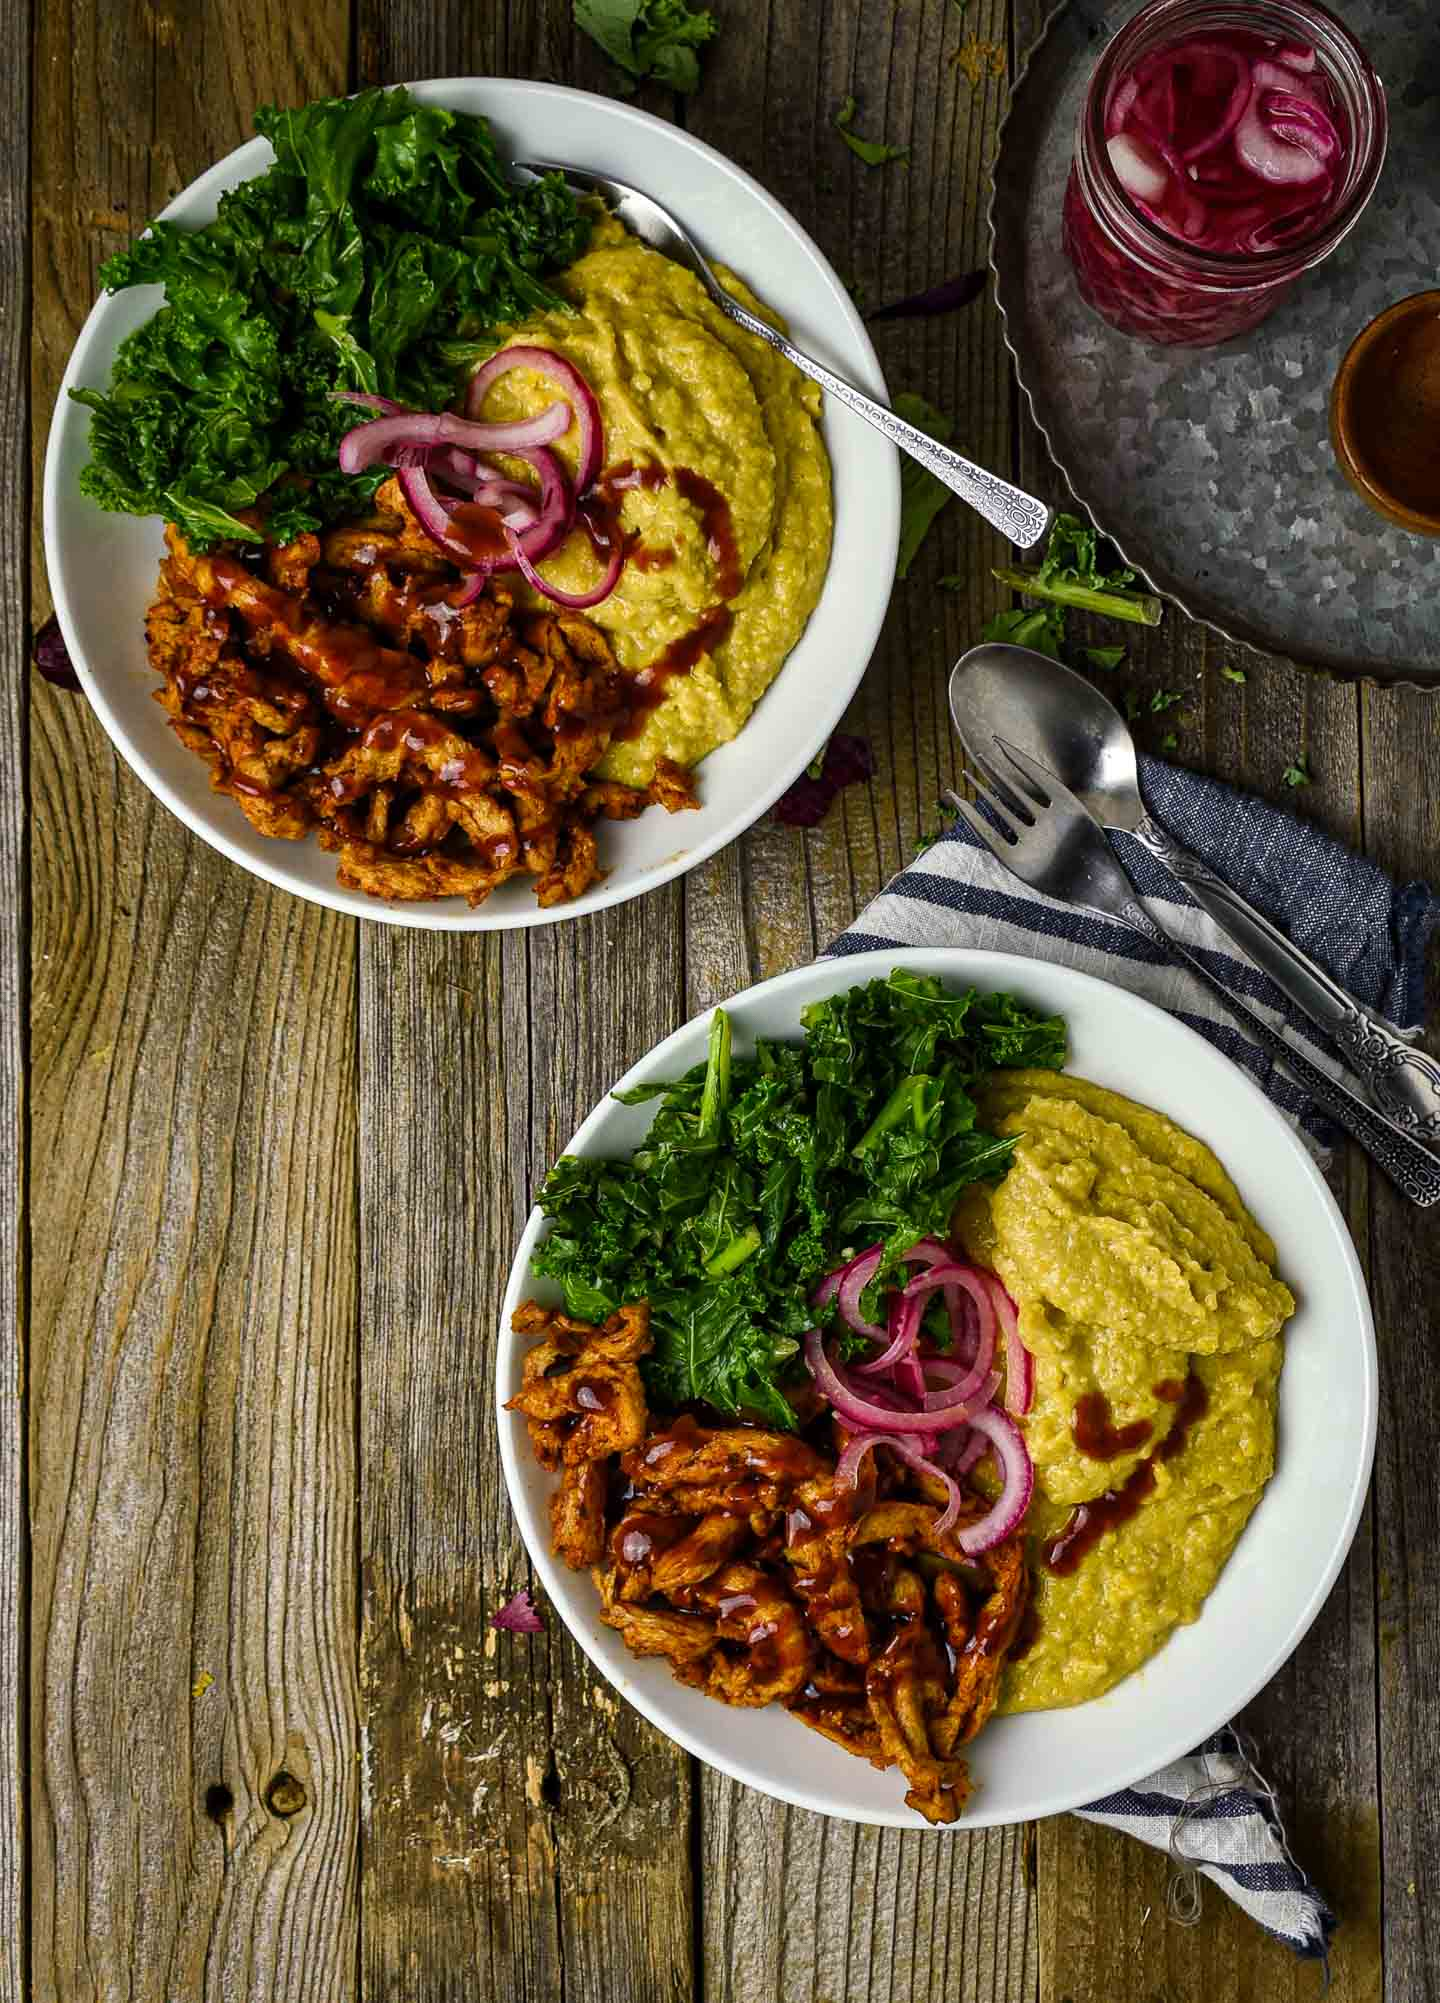 Vegan Grits Bowl with BBQ Soy Curls and Sauteed Kale is the definition of comfort food. A delicious and healthy plant-based breakfast bowl featuring creamy cheesy grits, hearty bbq soy curls, and greens.